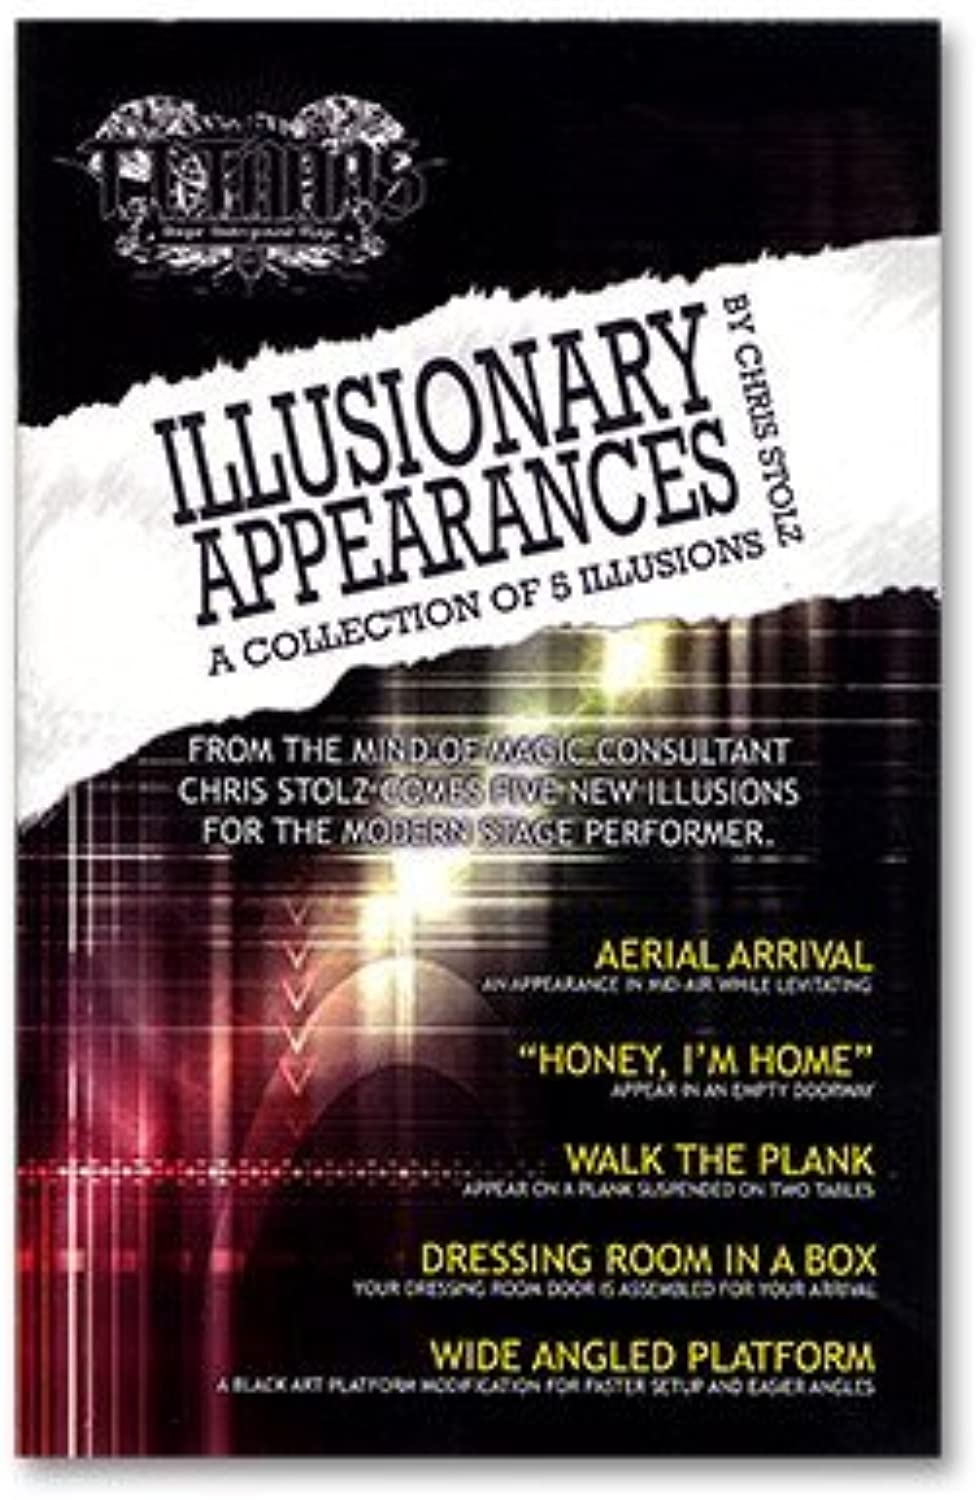 Murphys Illusionary Appearances by Chris Stolz and Titanas - Book